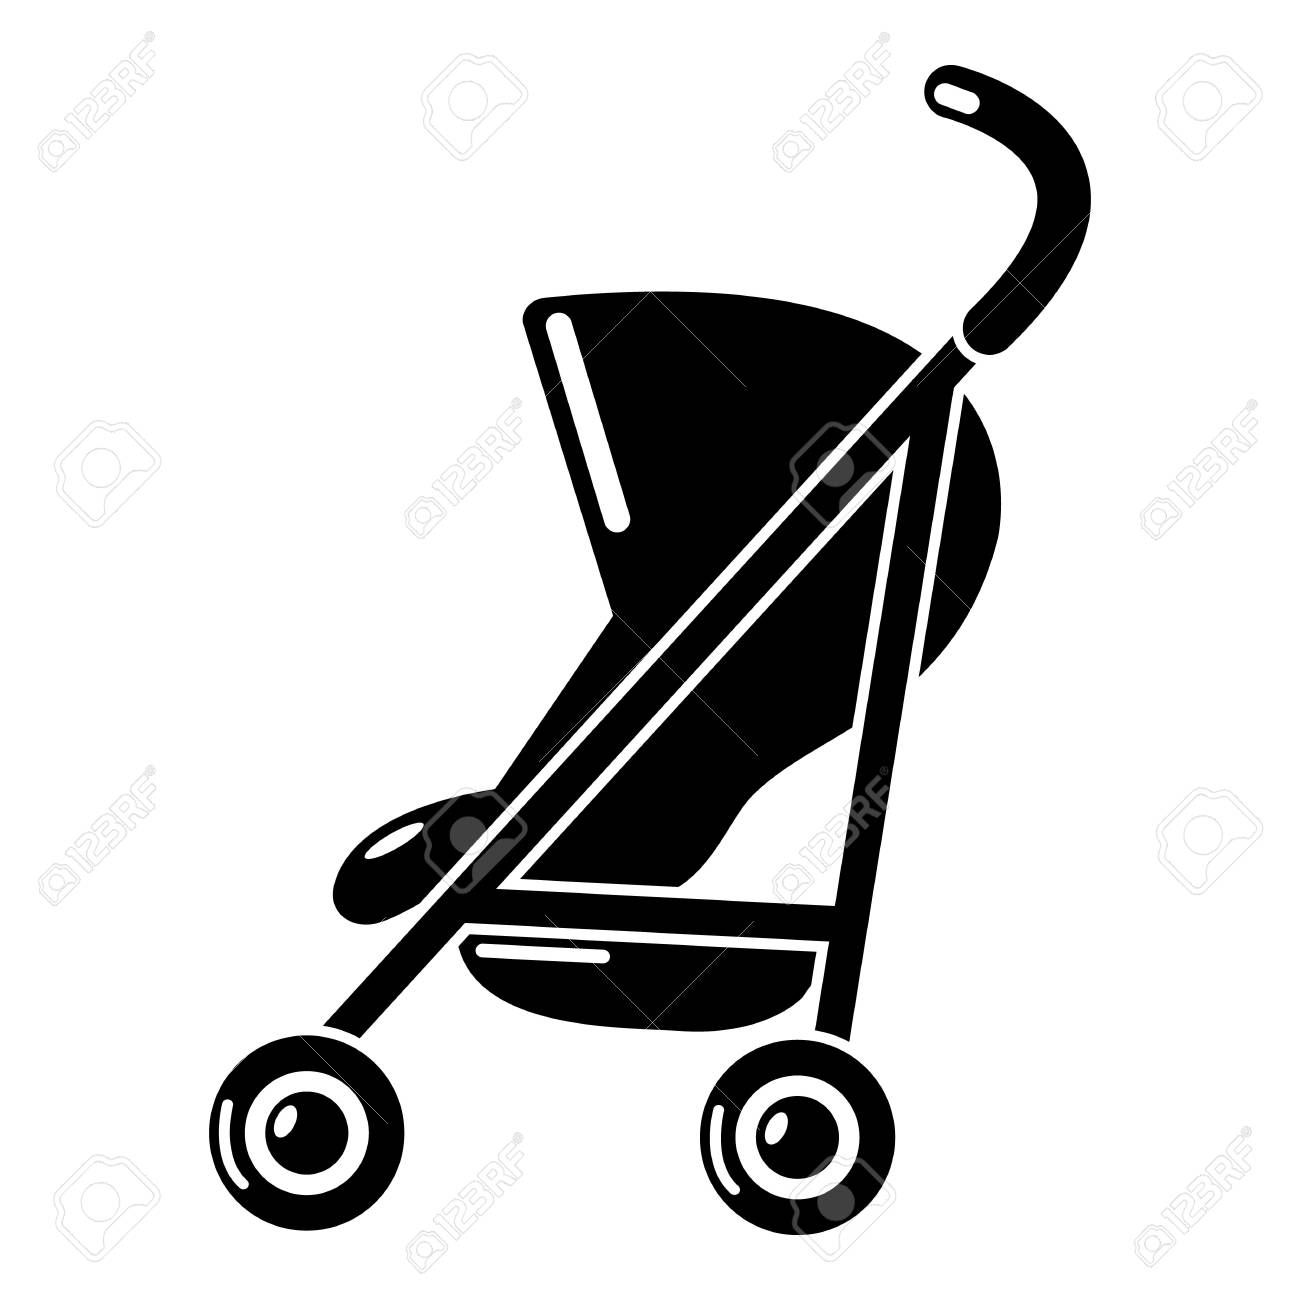 Baby carriage simple icon. Simple illustration of baby carriage simple vector icon for web - 89203465